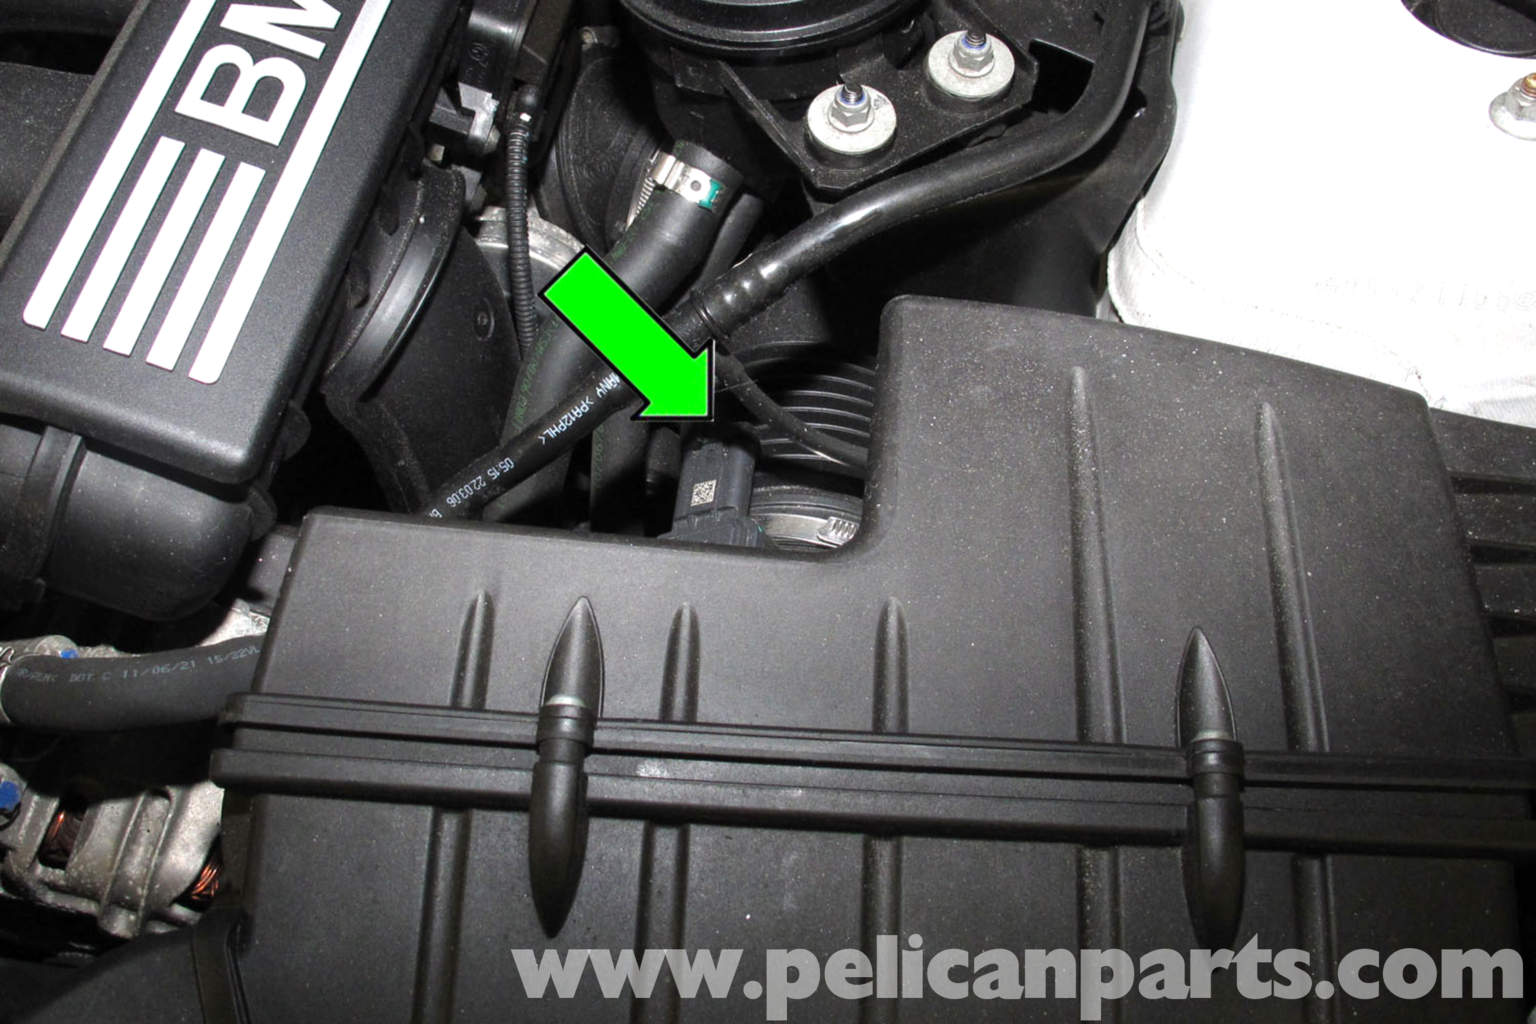 Replacement Toyota Highlander Wiring Diagram Wire 2010 Bmw X5 Maf Sensor Location Get Free Image About 2012 2005 Parts